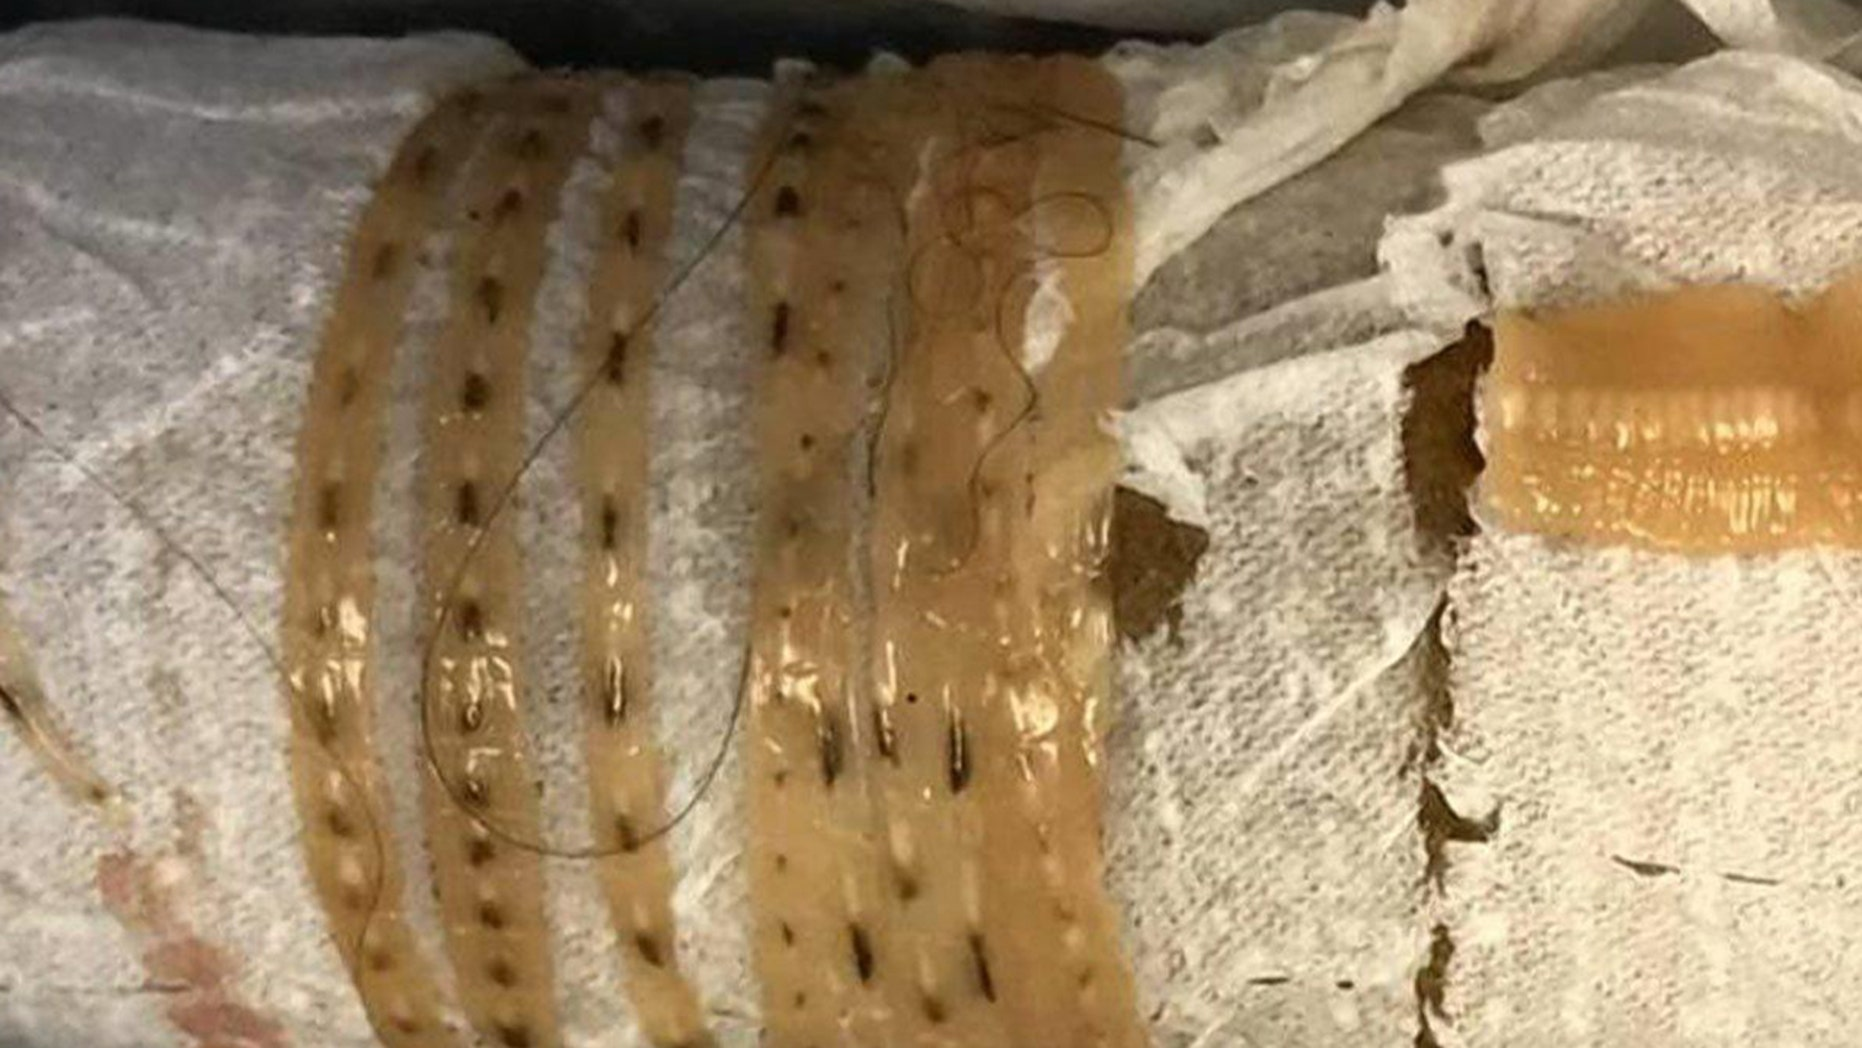 Five-foot long tapeworm came 'wiggling out' of man's body